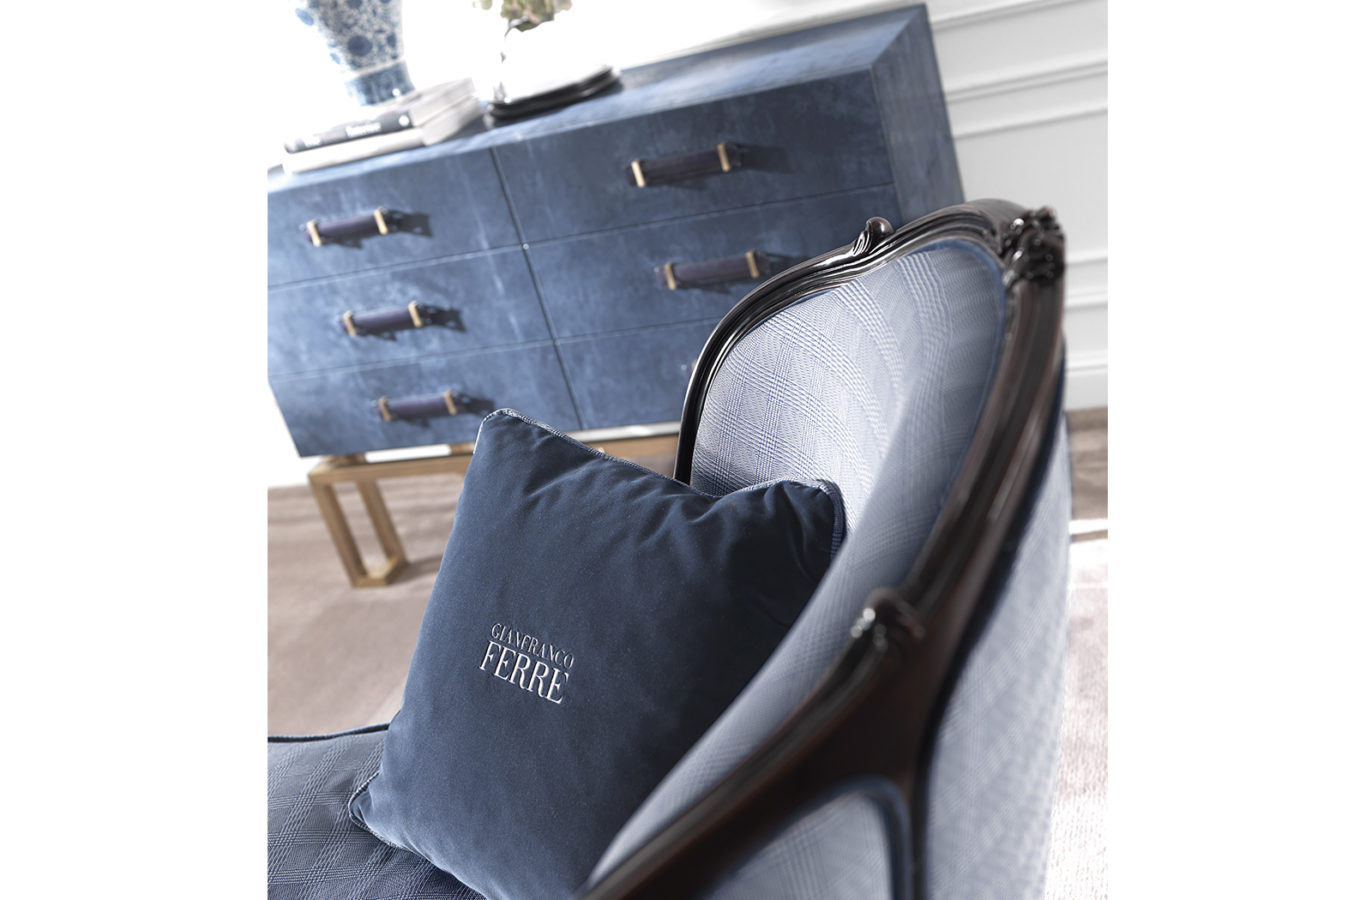 Gianfranco Ferre Home Burt Bench 01